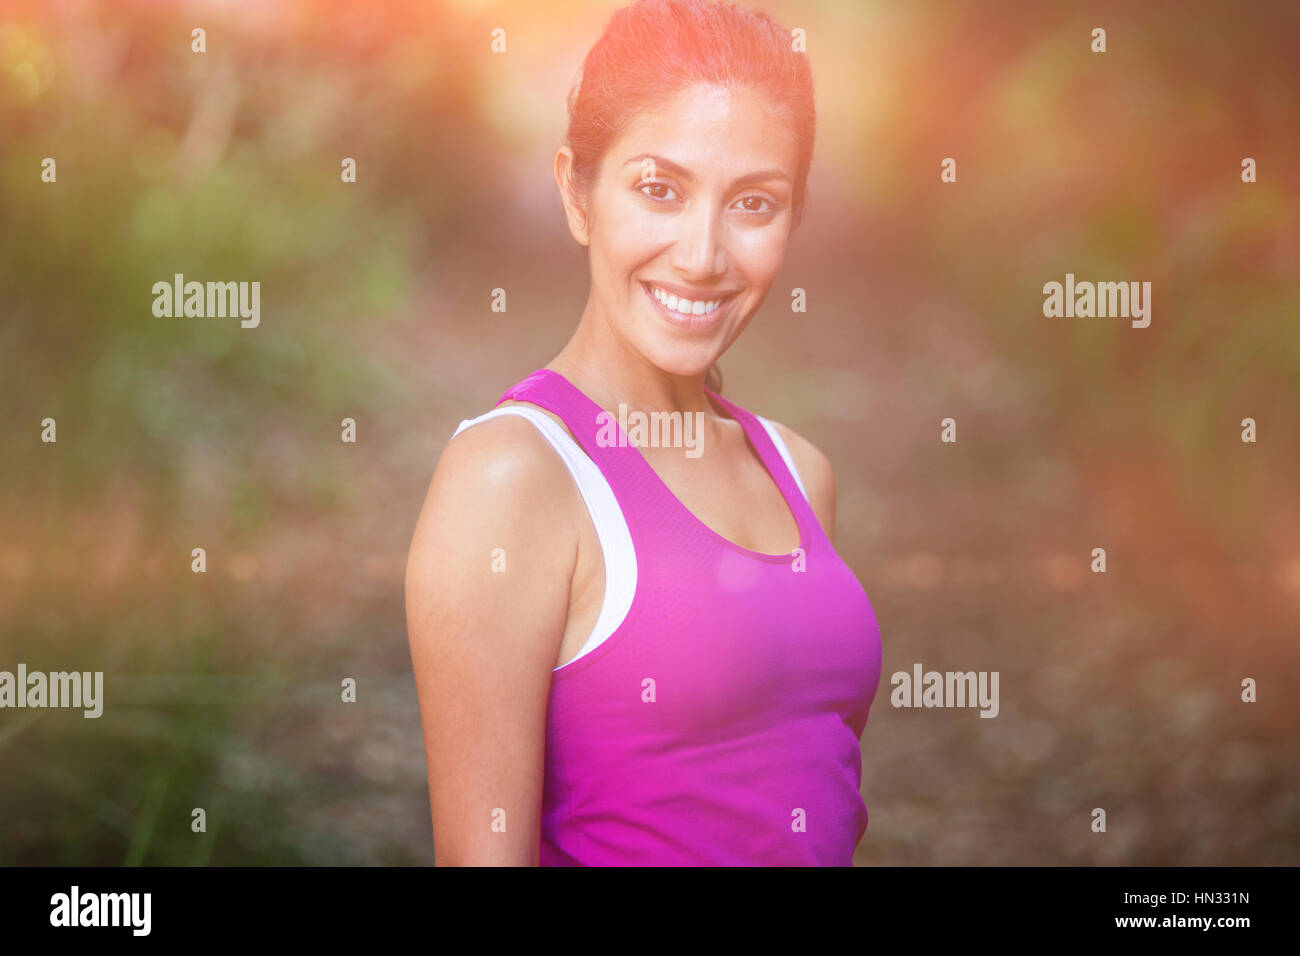 Portrait of smiling fit woman standing in park - Stock Image